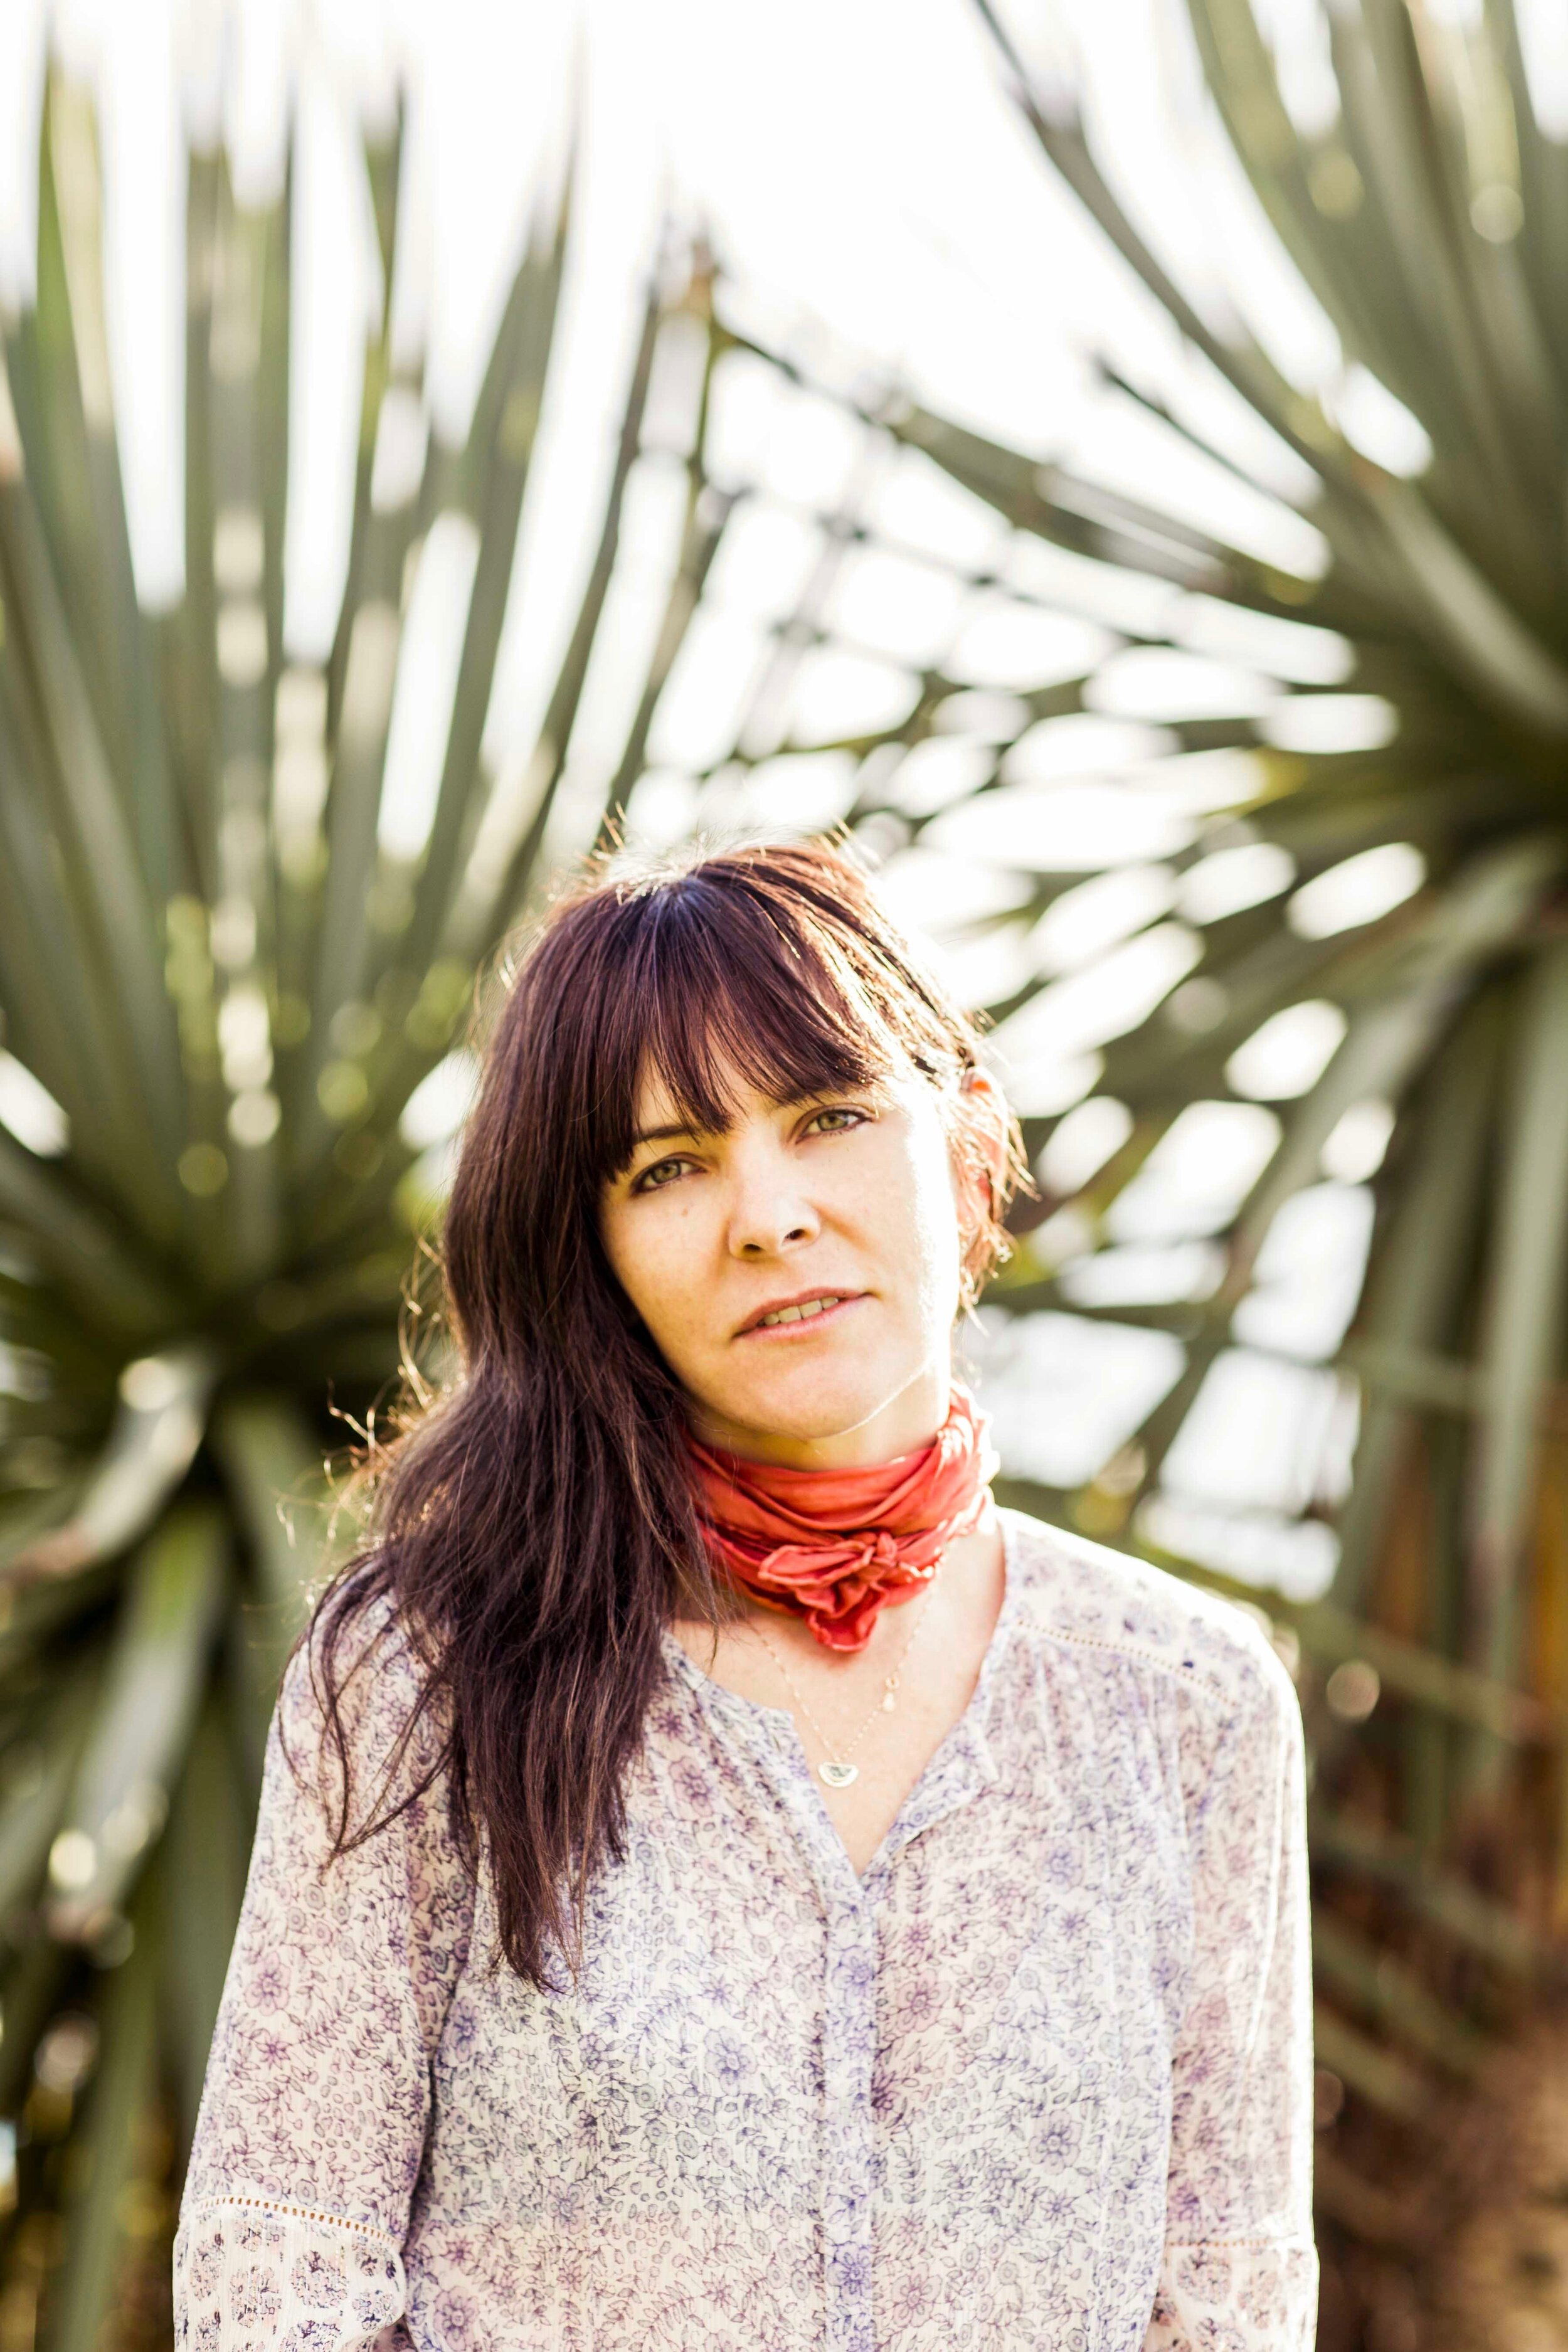 Kelsey Barrett of Heavy Nettle - Bio coming soon….Offering:Embodied herbalism workshop that will be located in the Ojai Hot Springs.